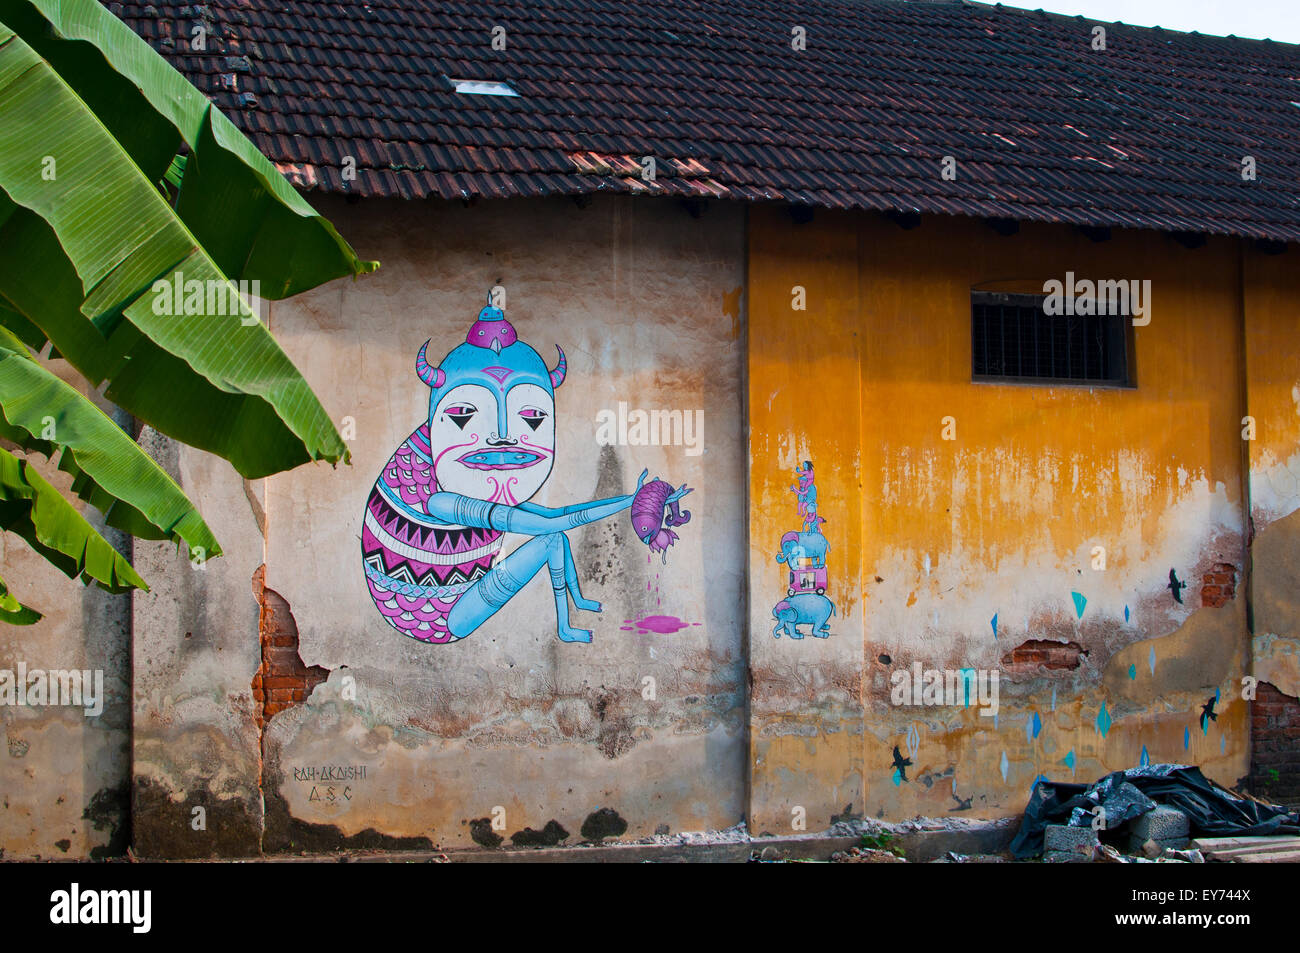 street art at fort cochin bienale 2014/2015, fort cochin, kerala, India, Asia - Stock Image